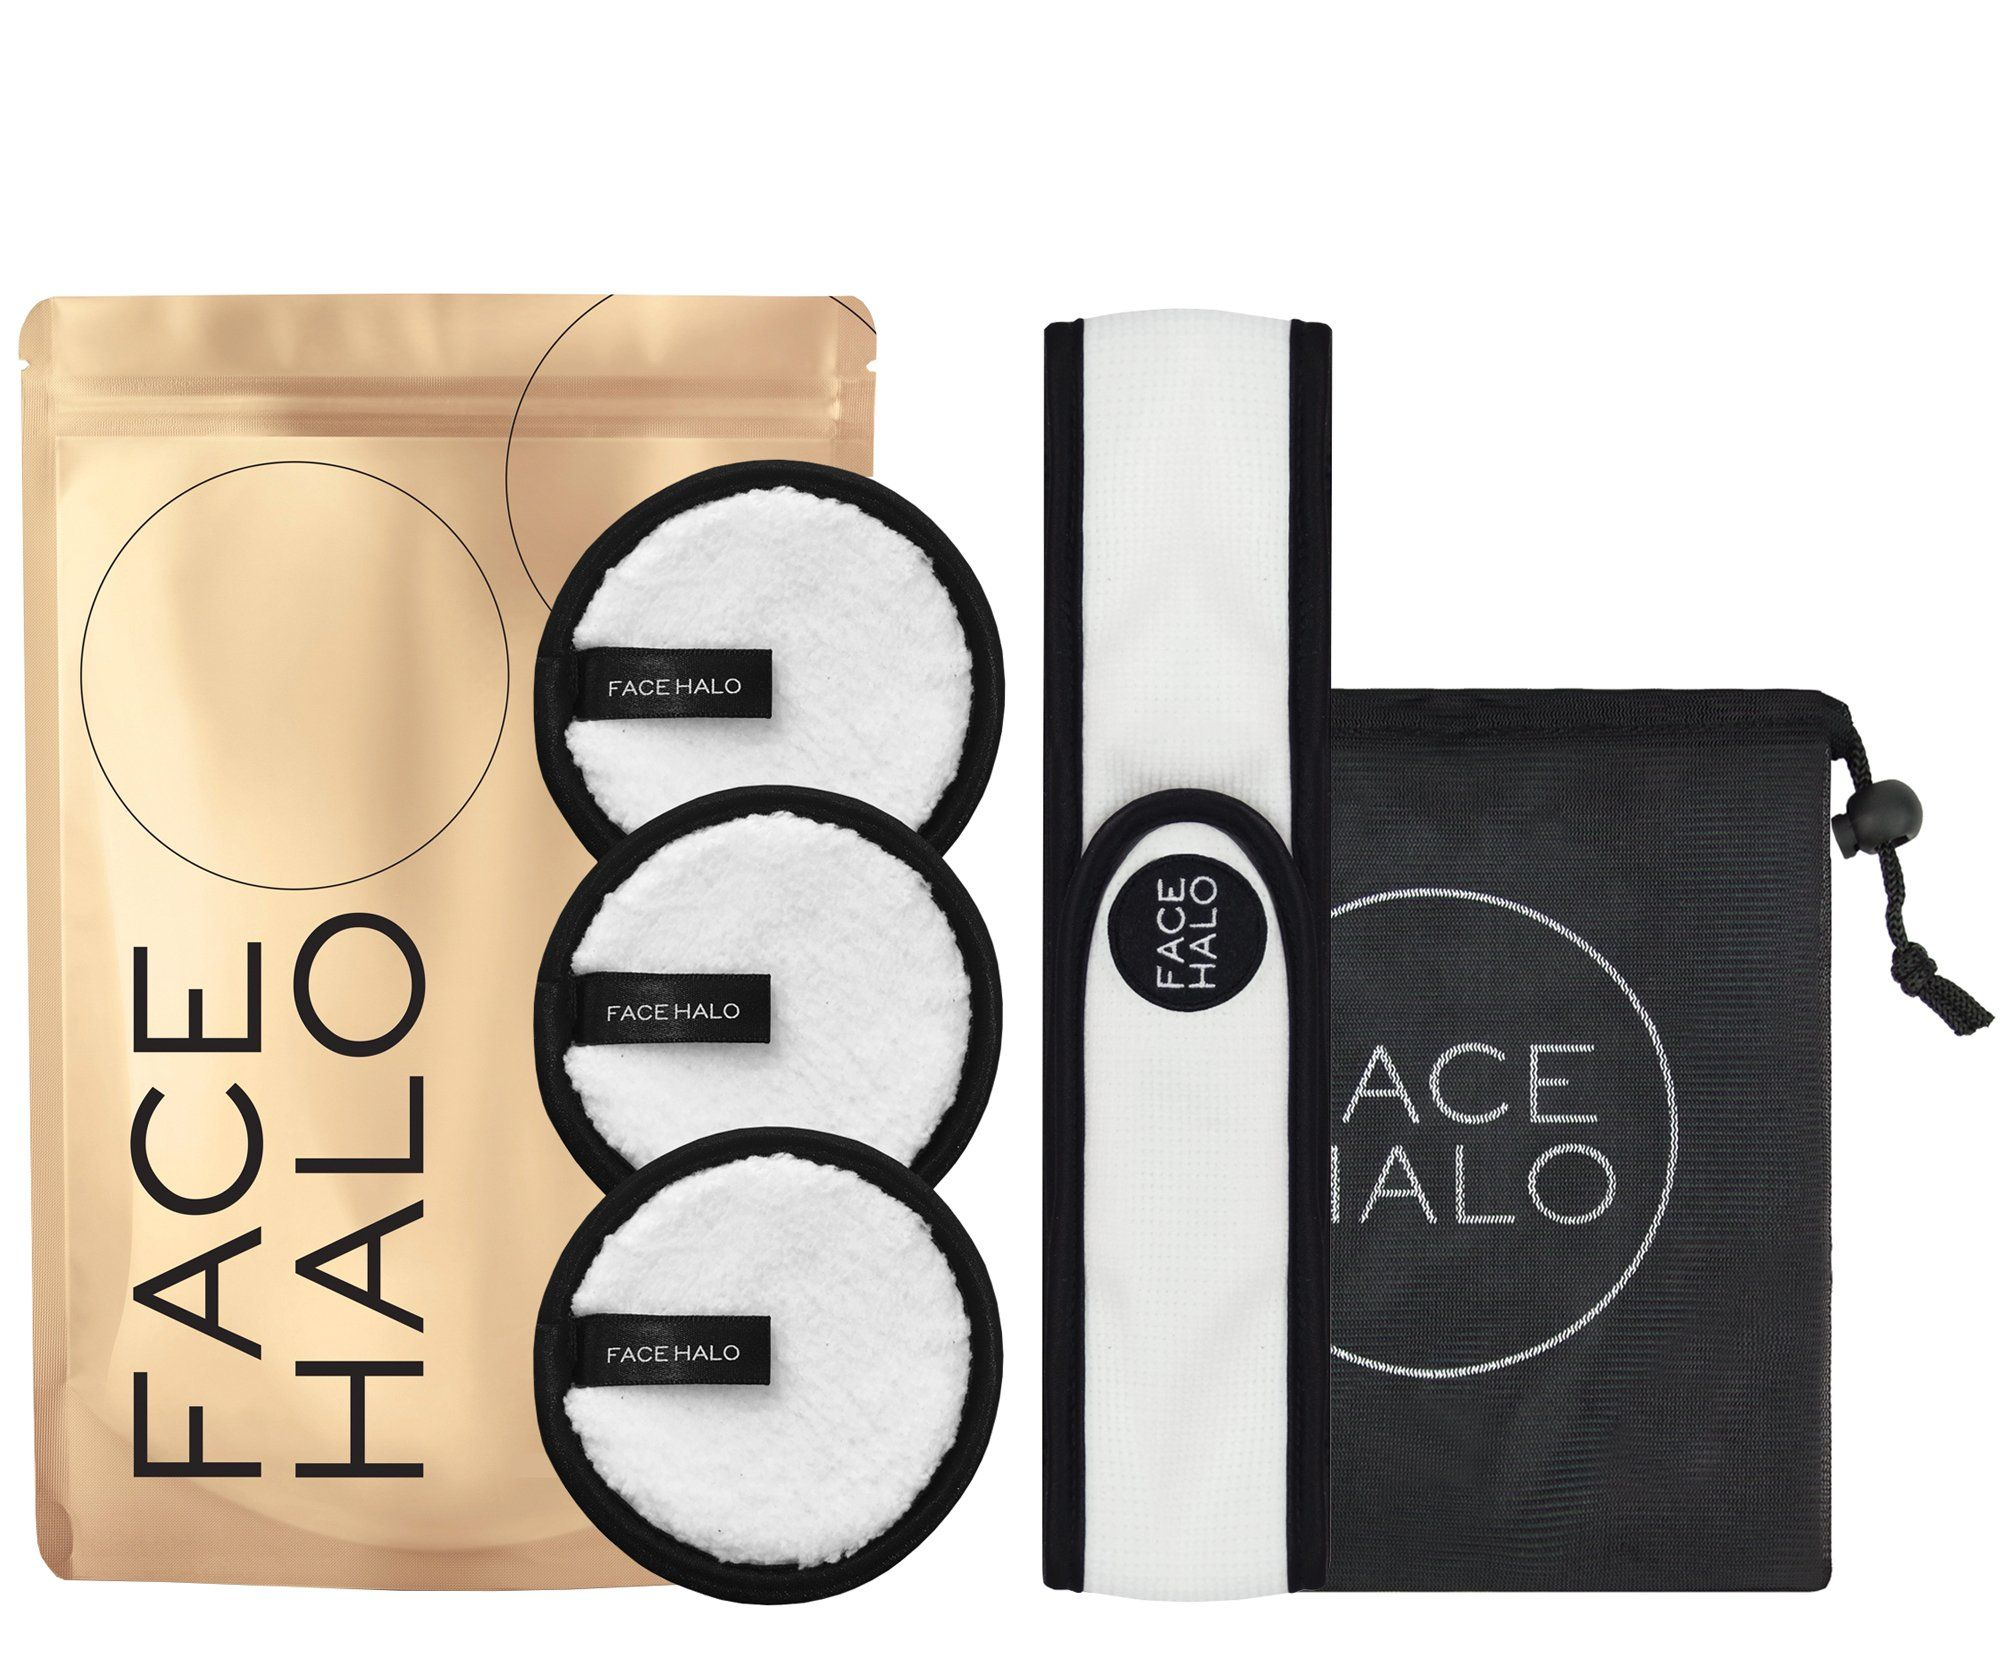 FACE HALO HOLIDAY PACK Holiday packing, Makeup remover, Halo